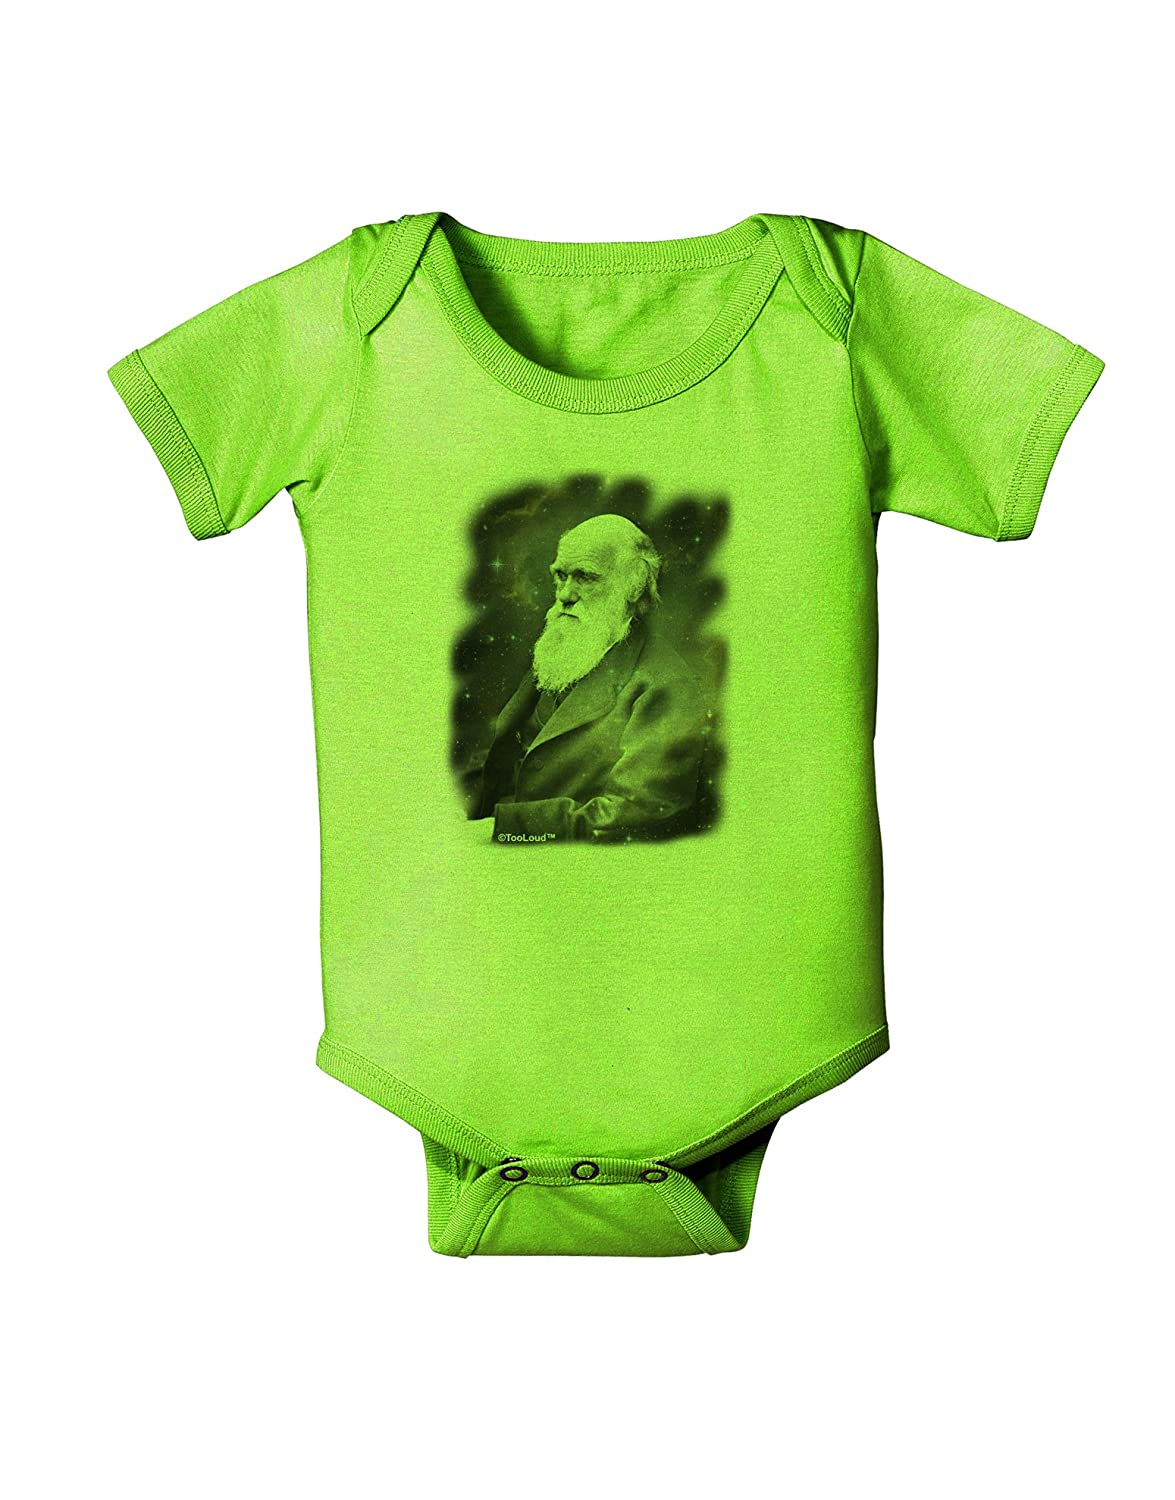 TooLoud Charles Darwin in Space Baby Romper Bodysuit